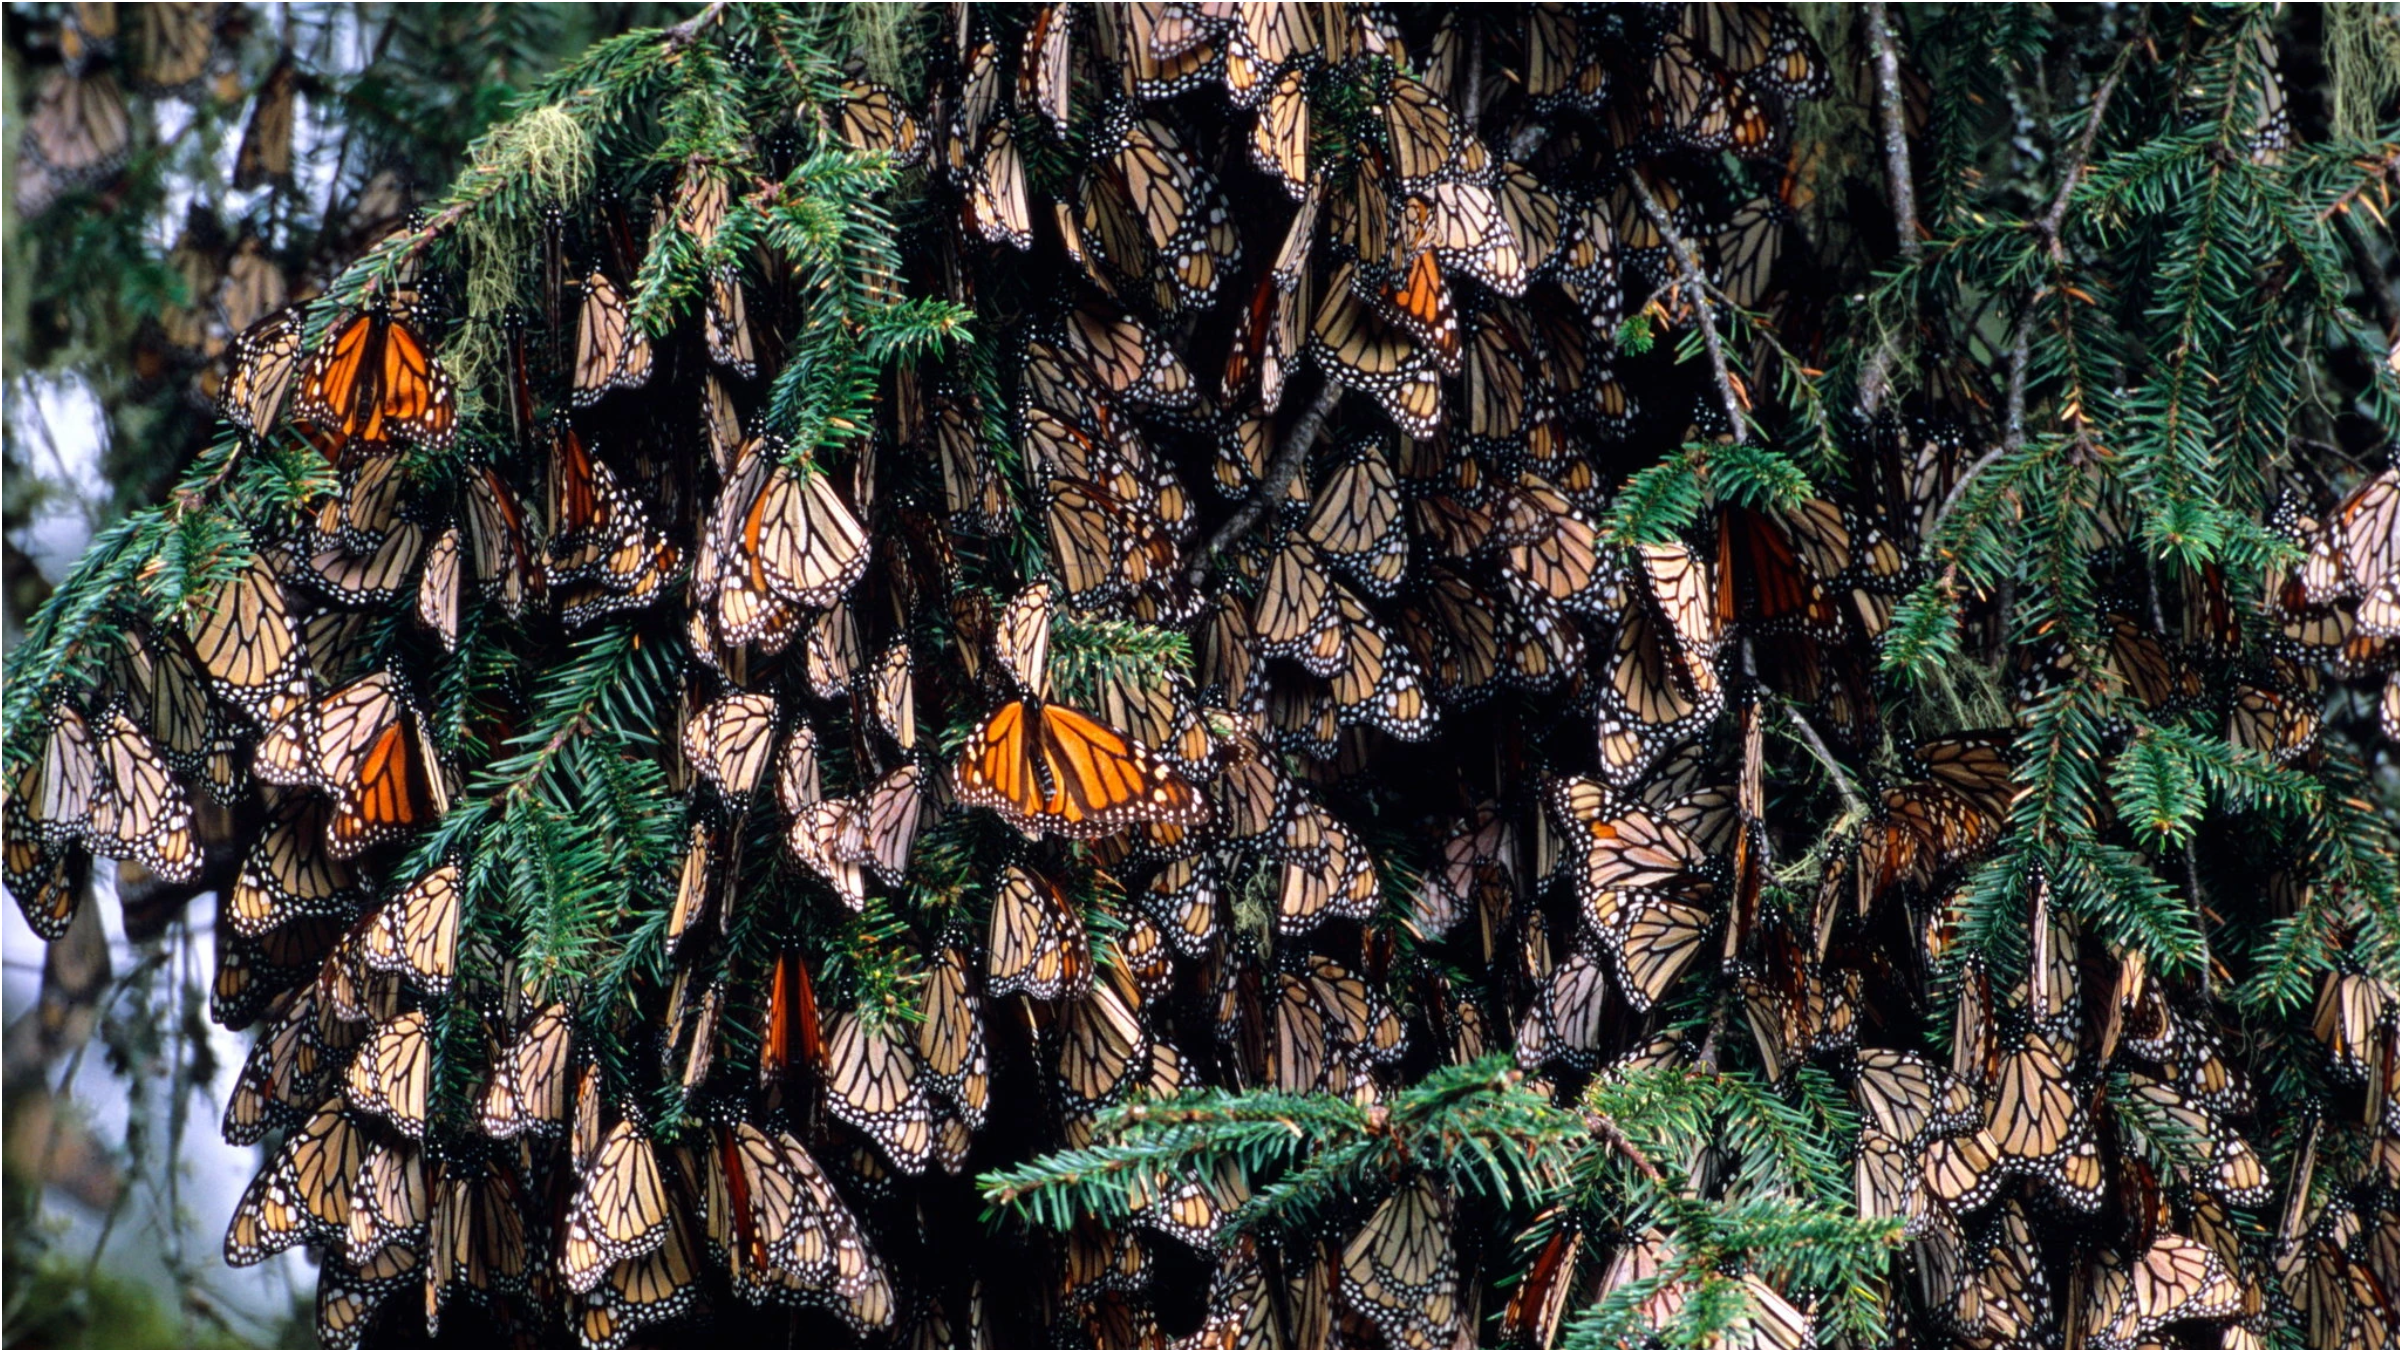 Many orange butterflies clumped together in tree branches